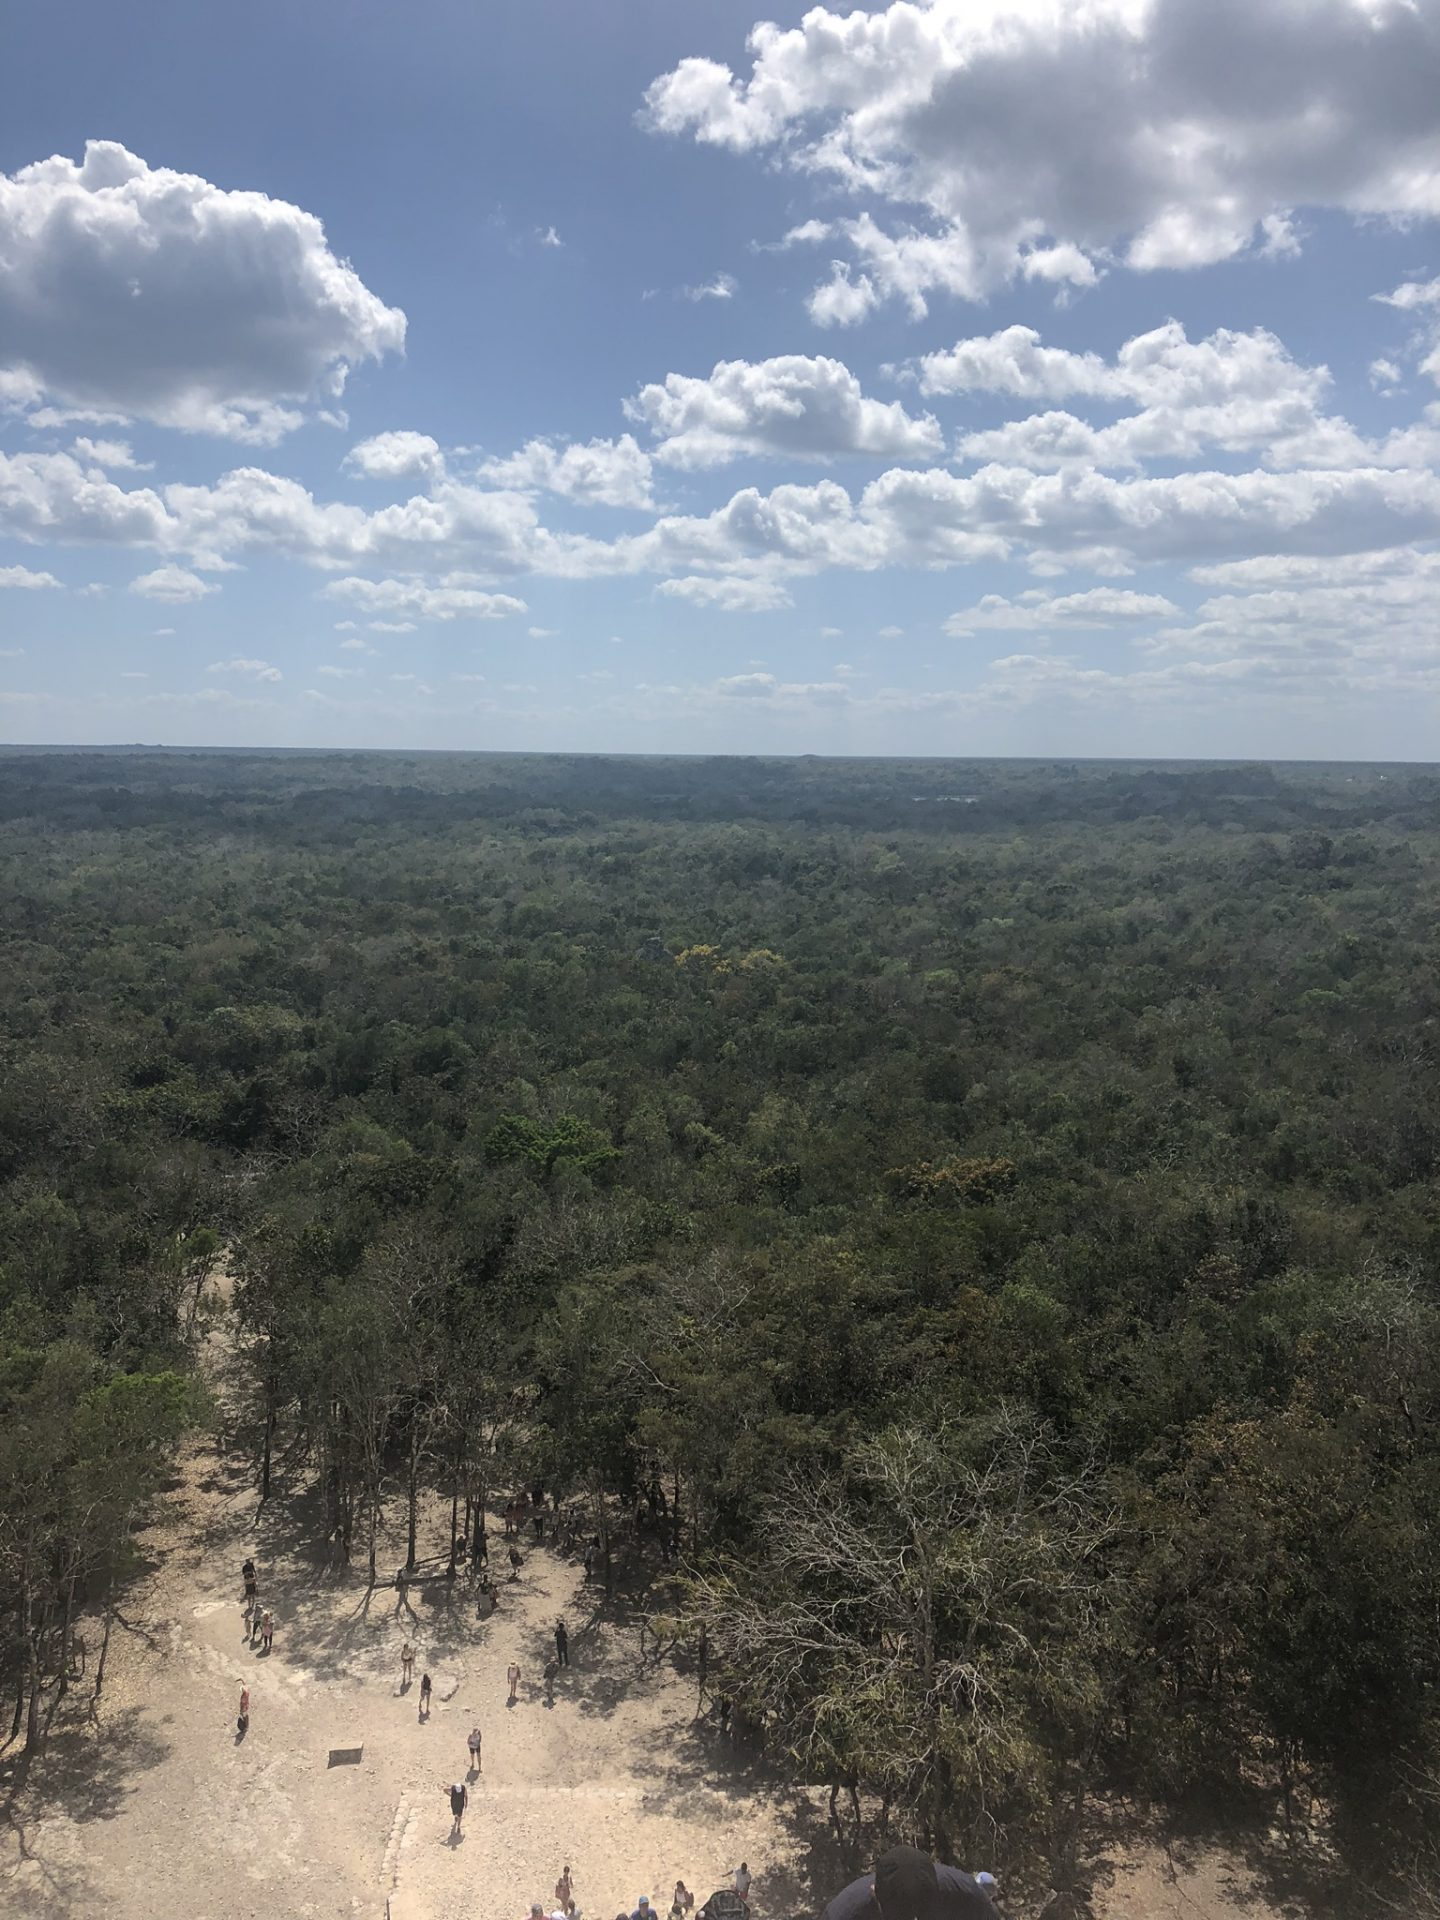 View from the top of the pyramid at Coba, Riviera Maya